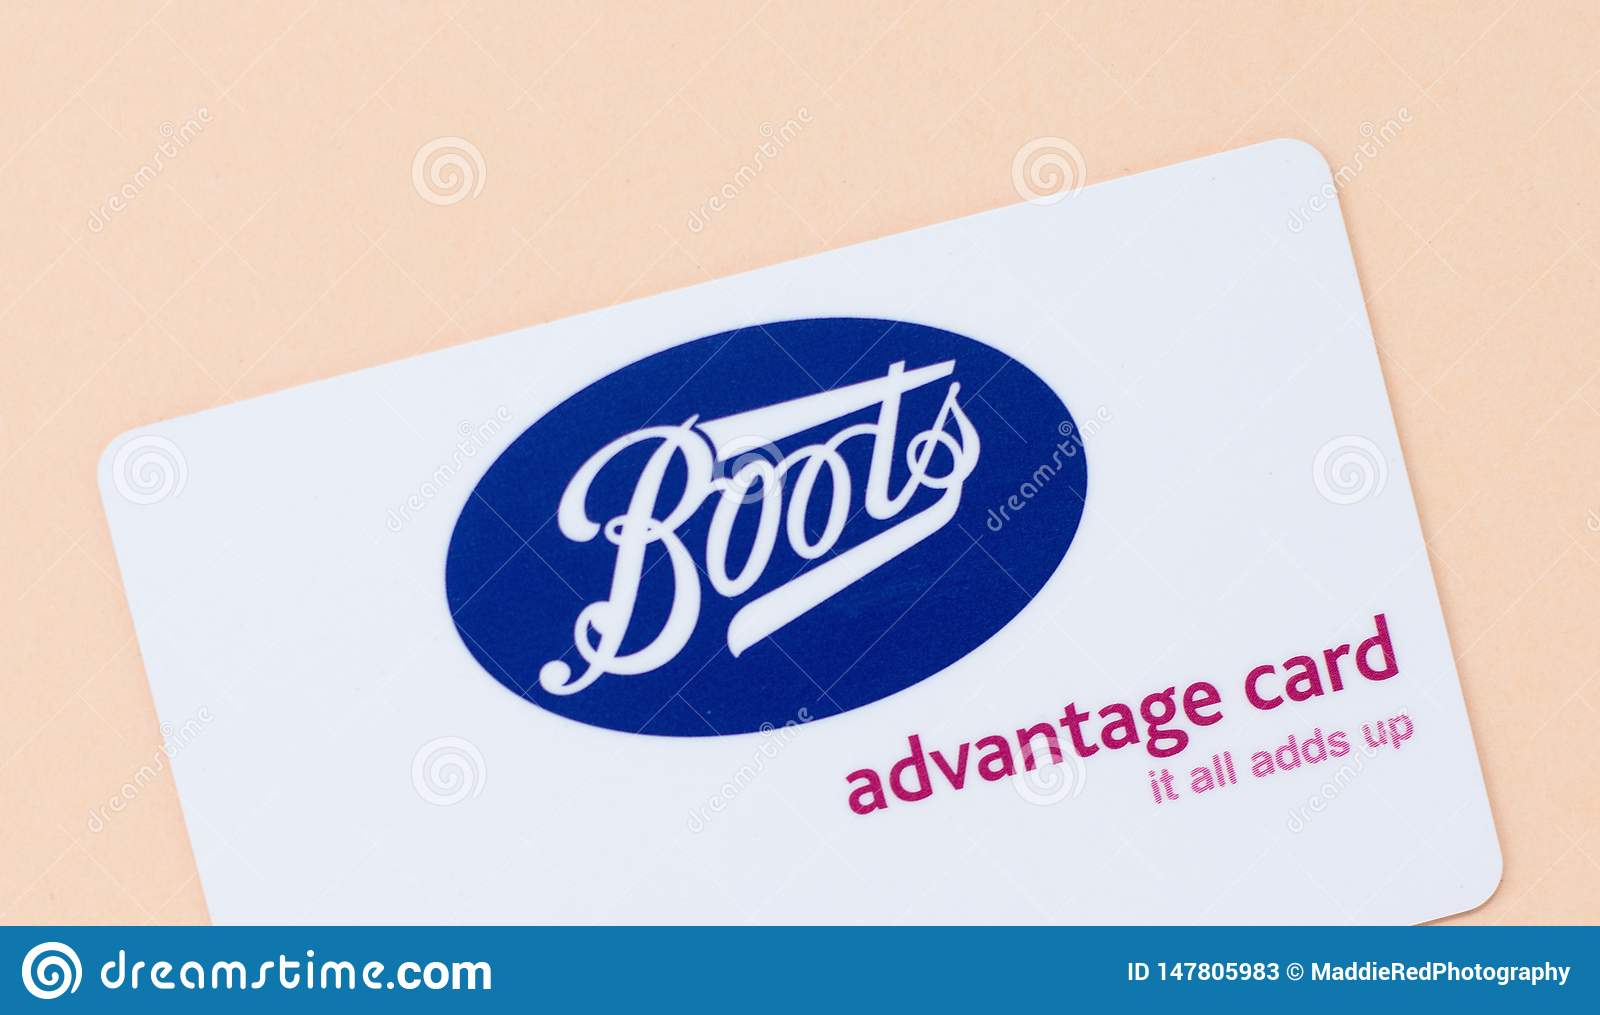 London, UK - 14th May 2019 - Boots advantage card. Boots is a health and beauty retailer and pharmacy chain in the UK